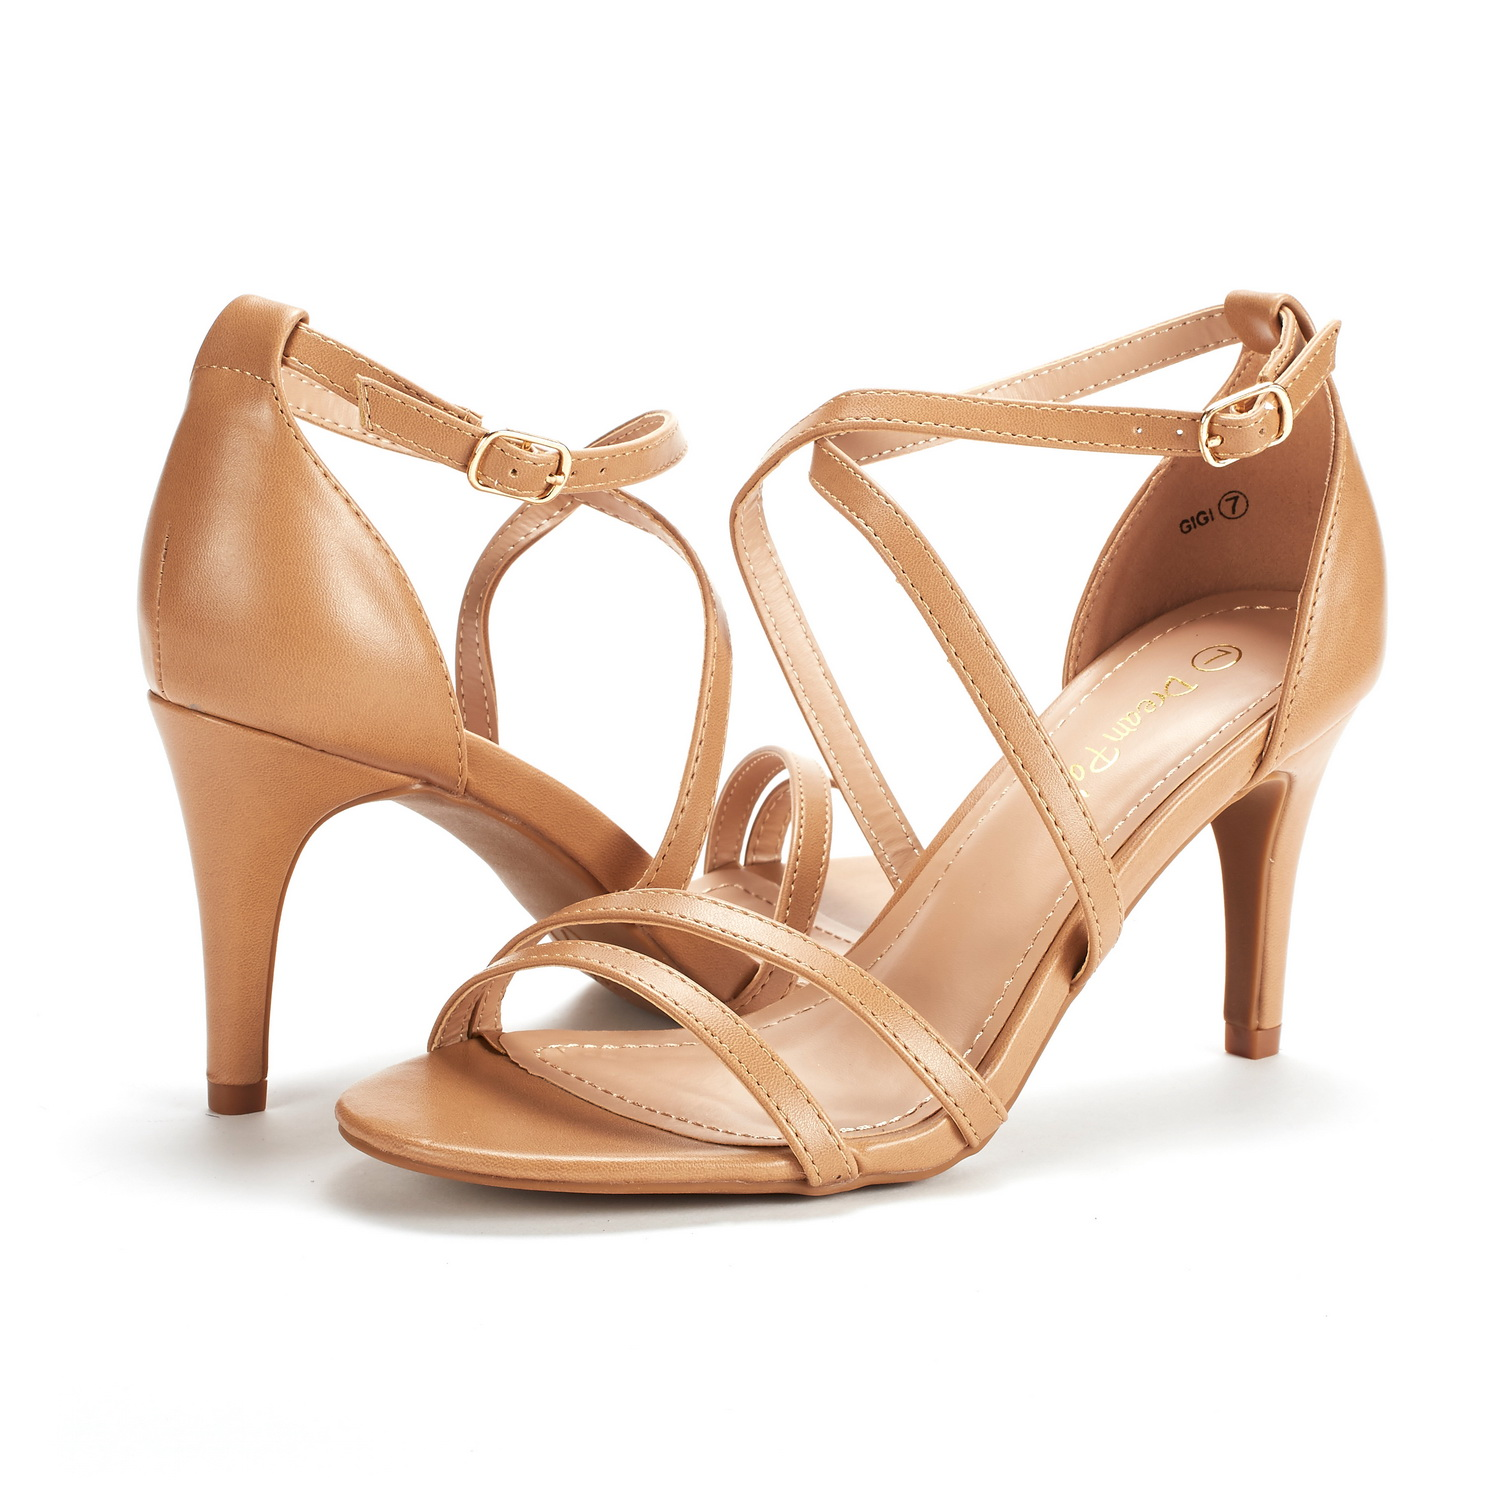 DREAM-PAIRS-Women-039-s-Ankle-Strap-High-Heel-Sandals-Dress-Shoes-Wedding-Party thumbnail 9